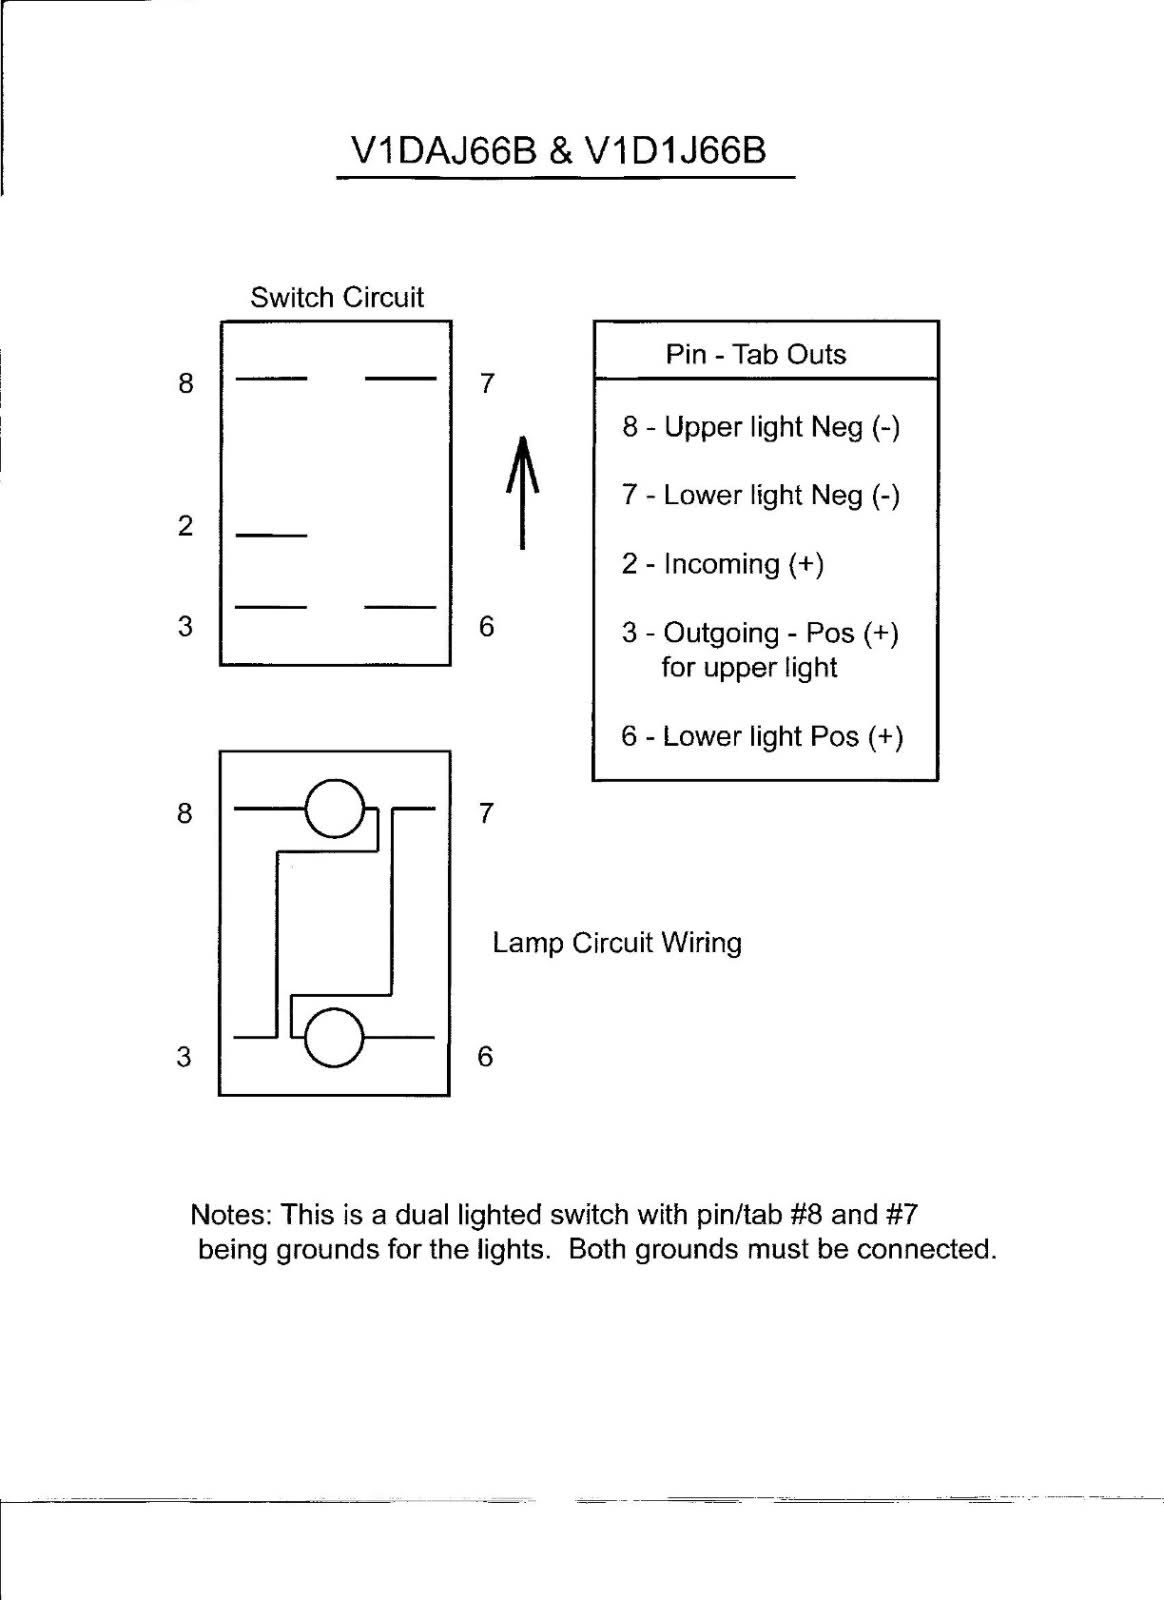 Carling 5pin switch diagram | Electrical | Free images